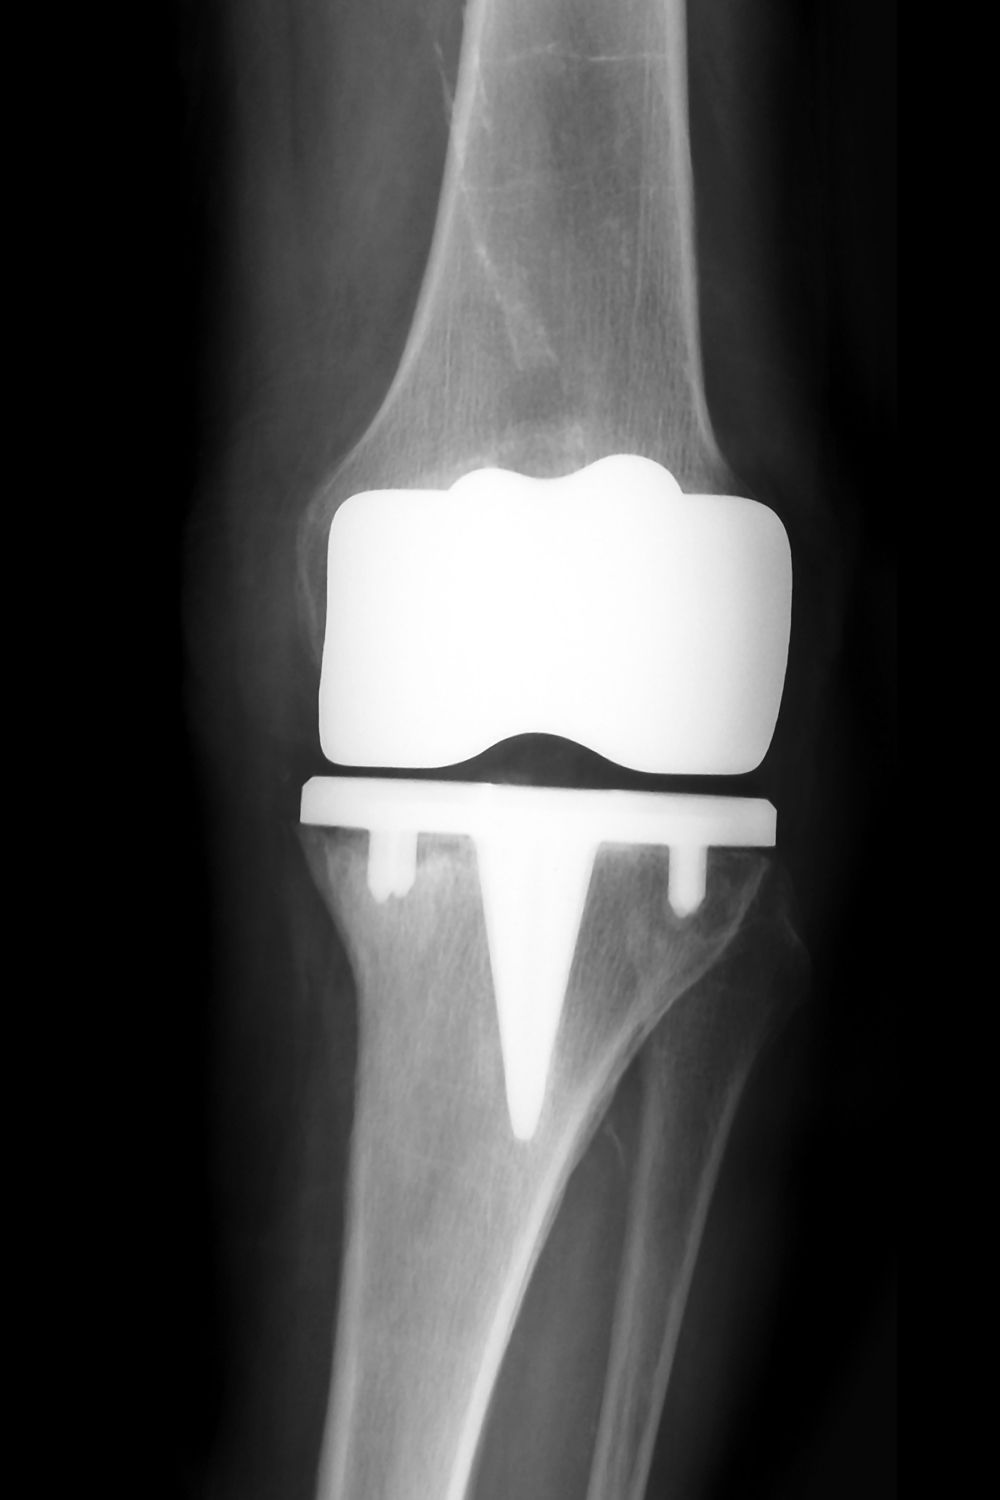 Why Patients Delay or Decline Knee Replacement Surgery